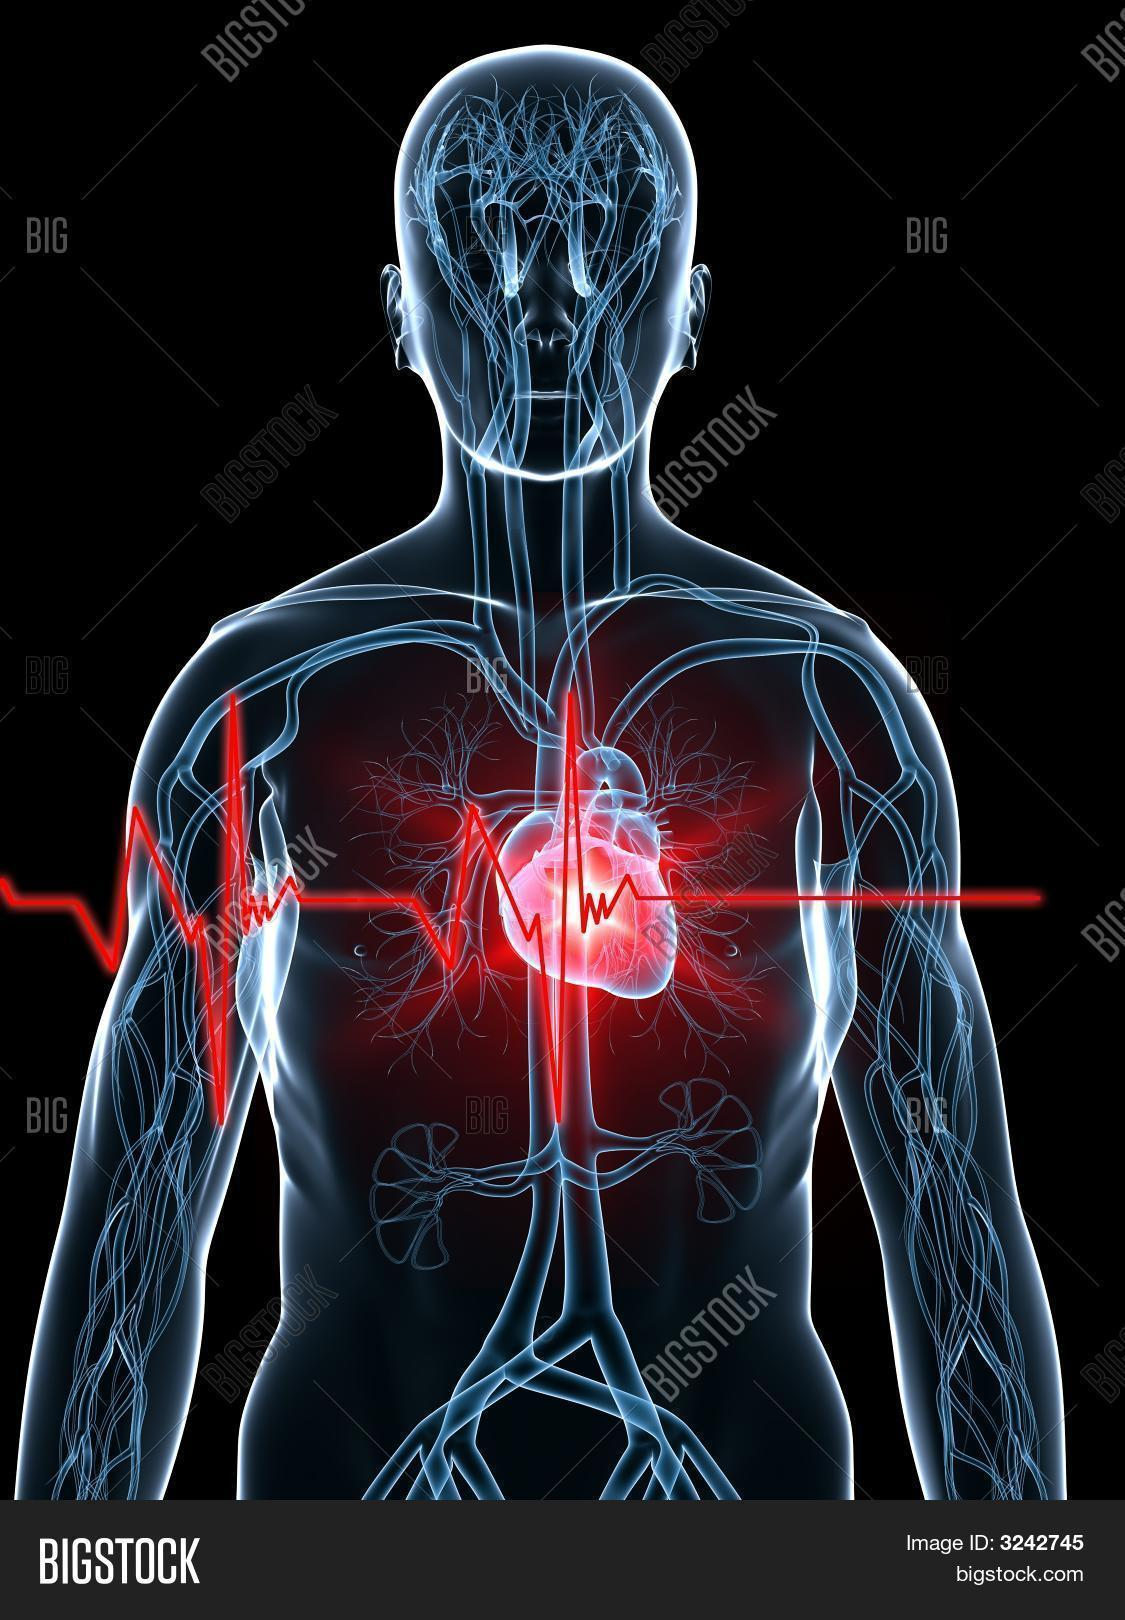 Heartbeat/Heart Attack Image & Photo (Free Trial) | Bigstock